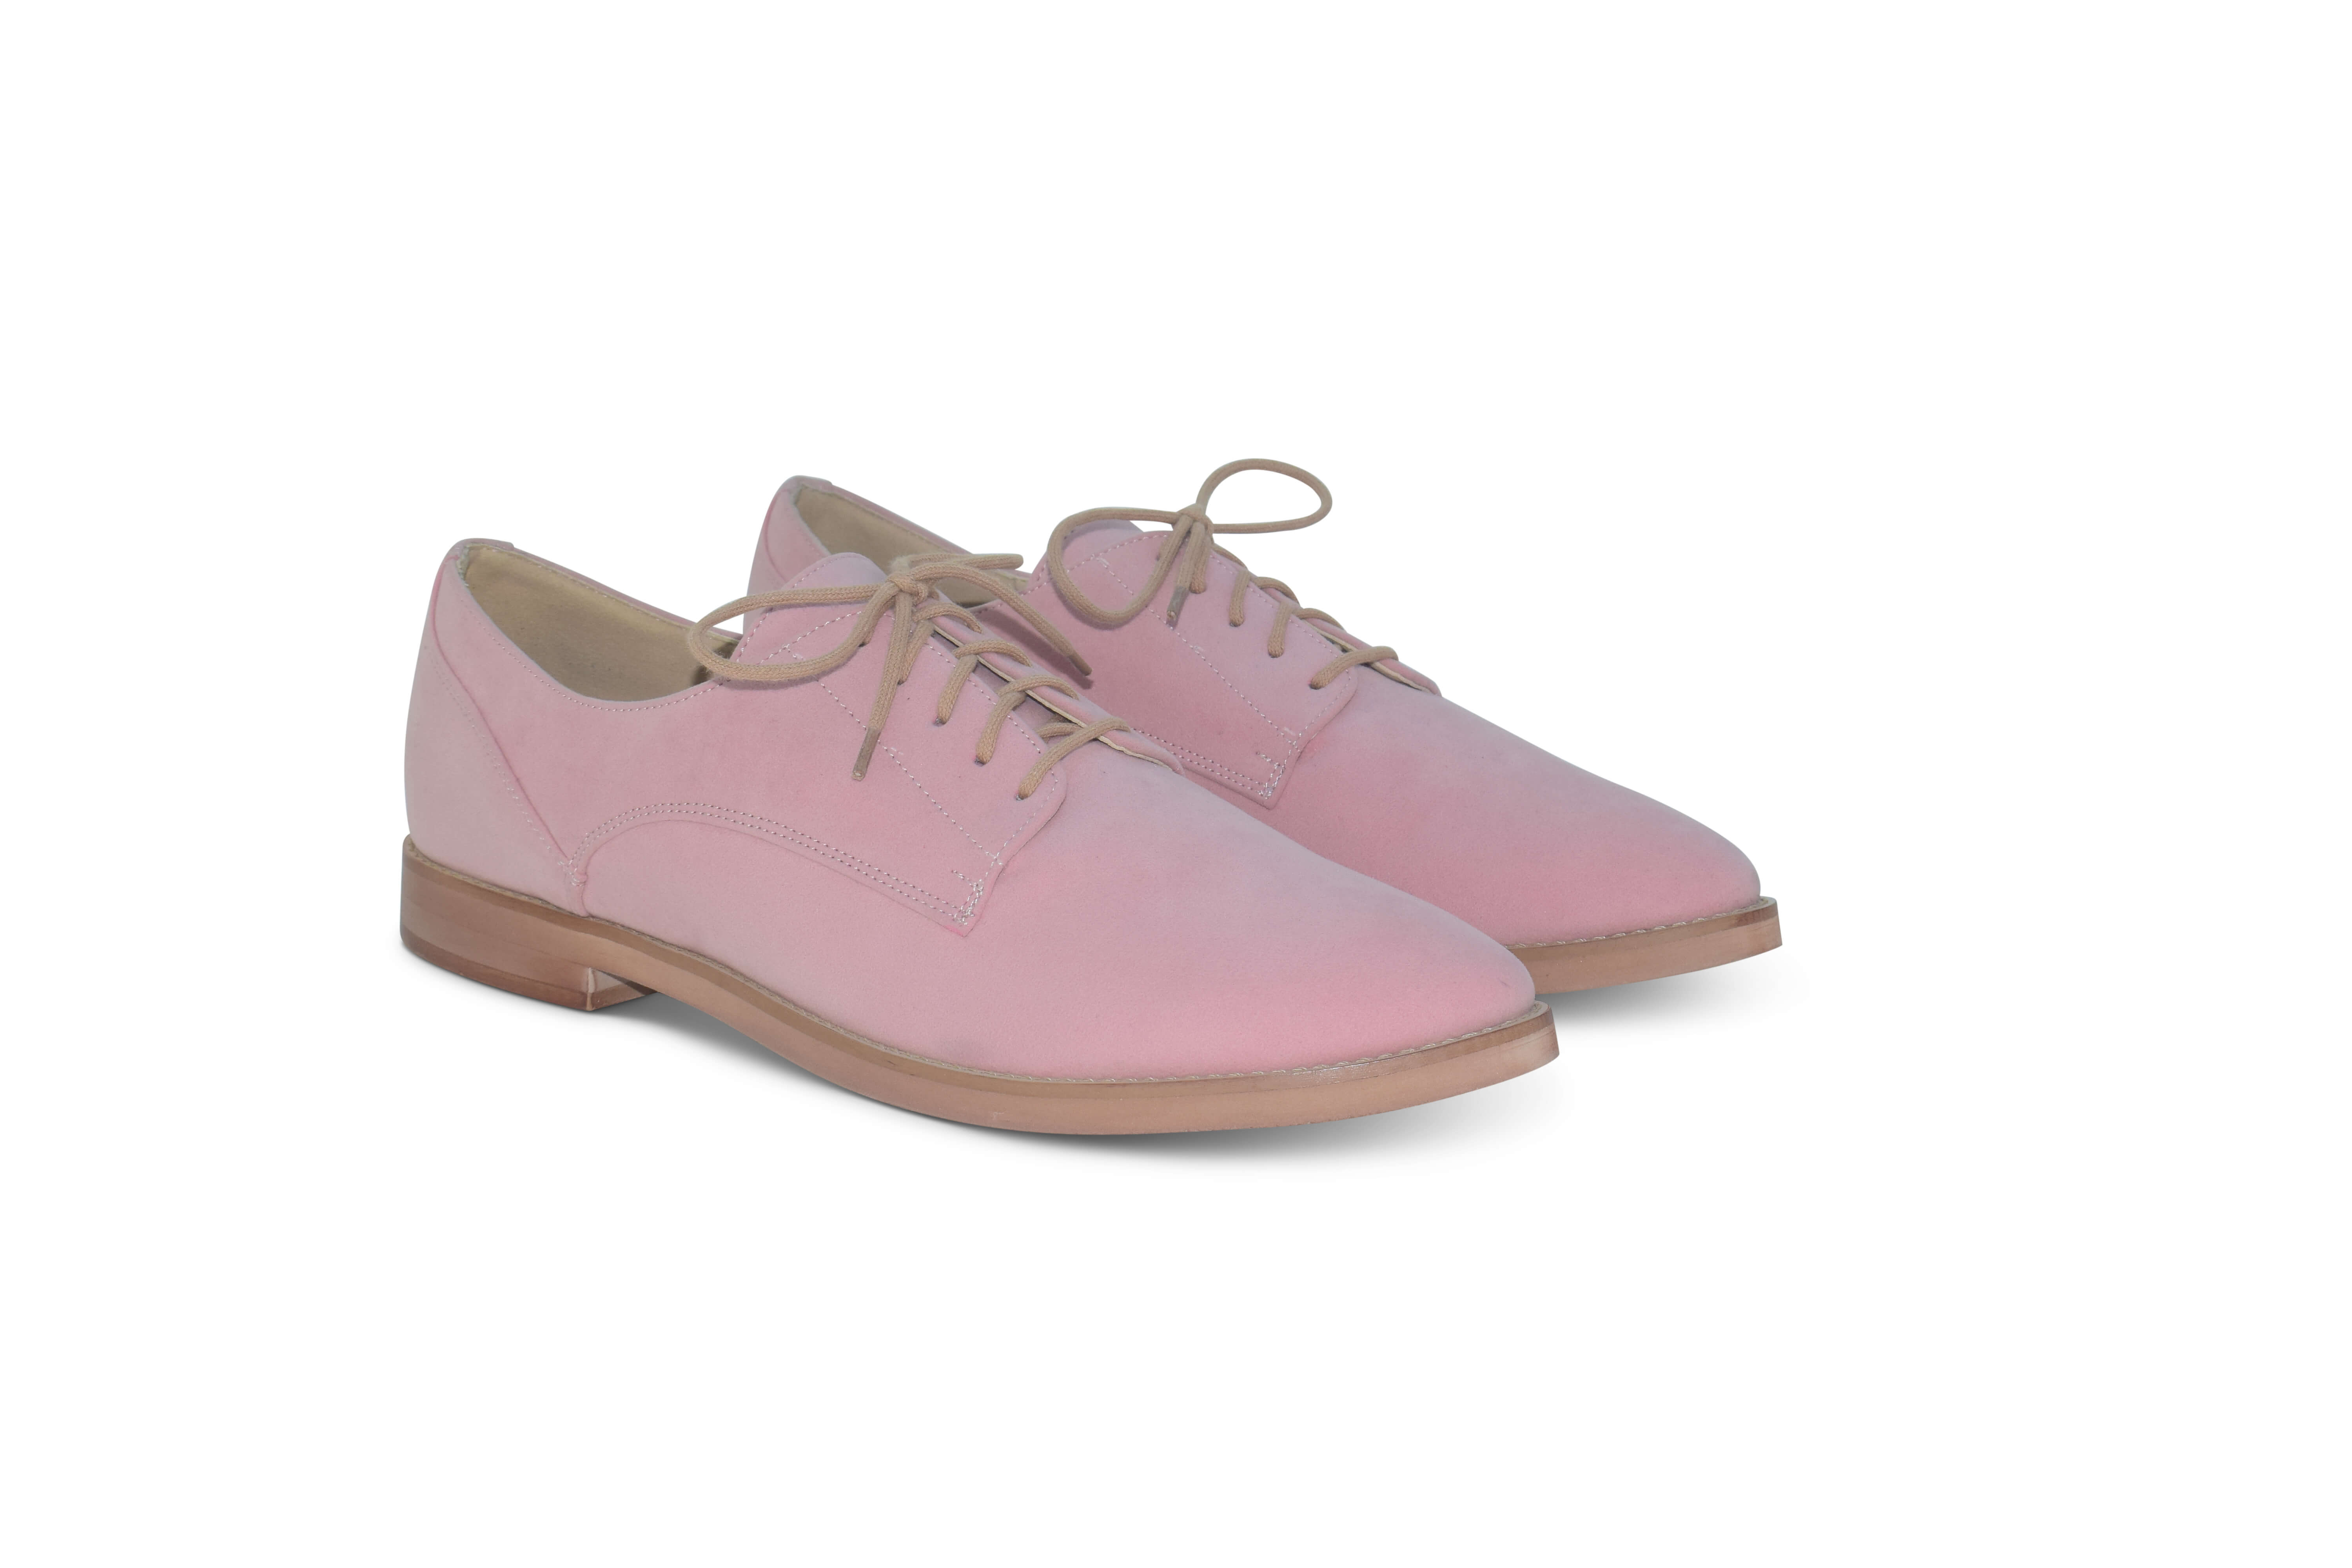 Harriett faux suede pointed toe Oxfords - pink